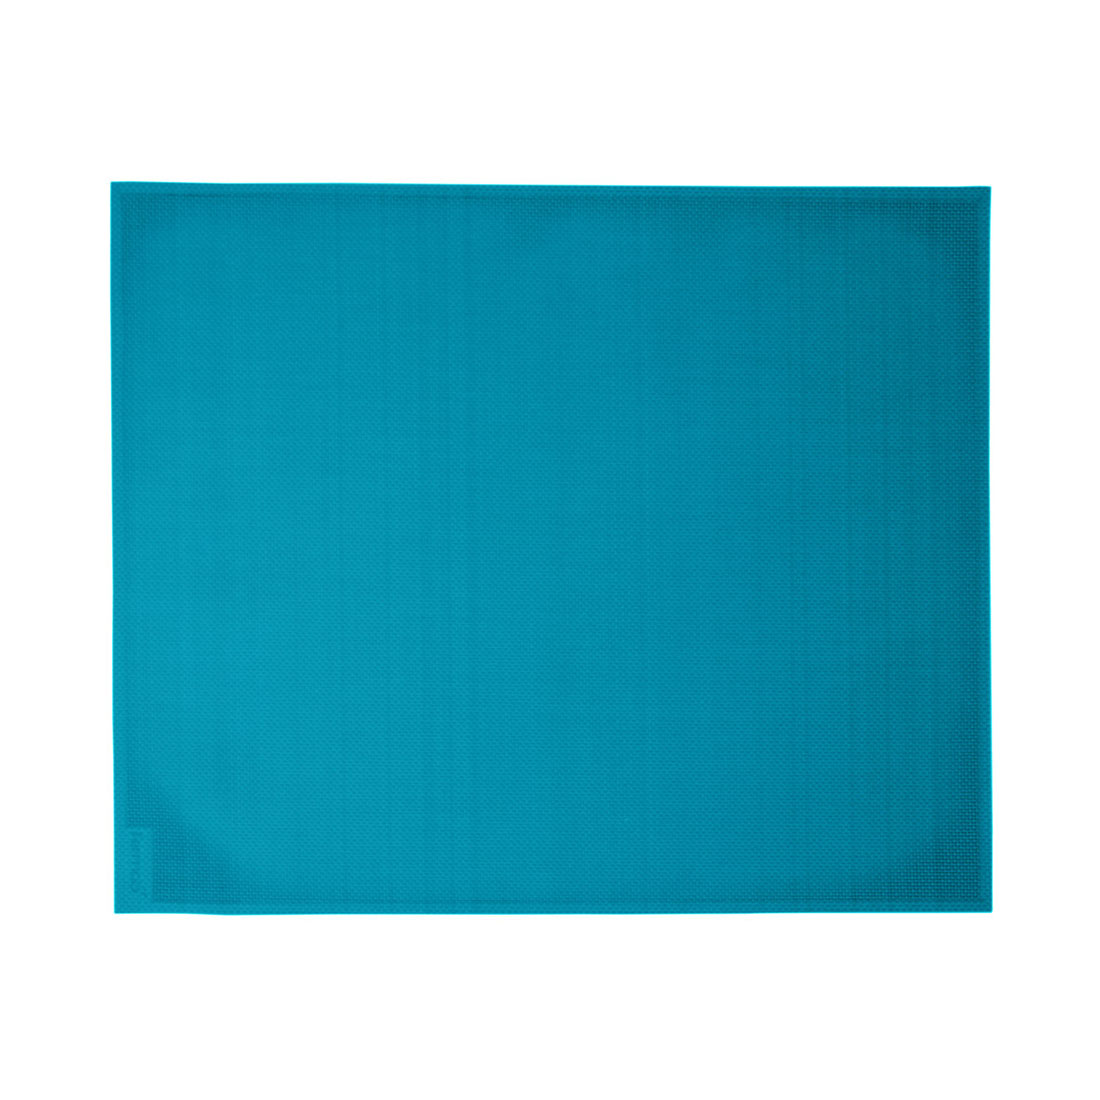 placemat turquoise